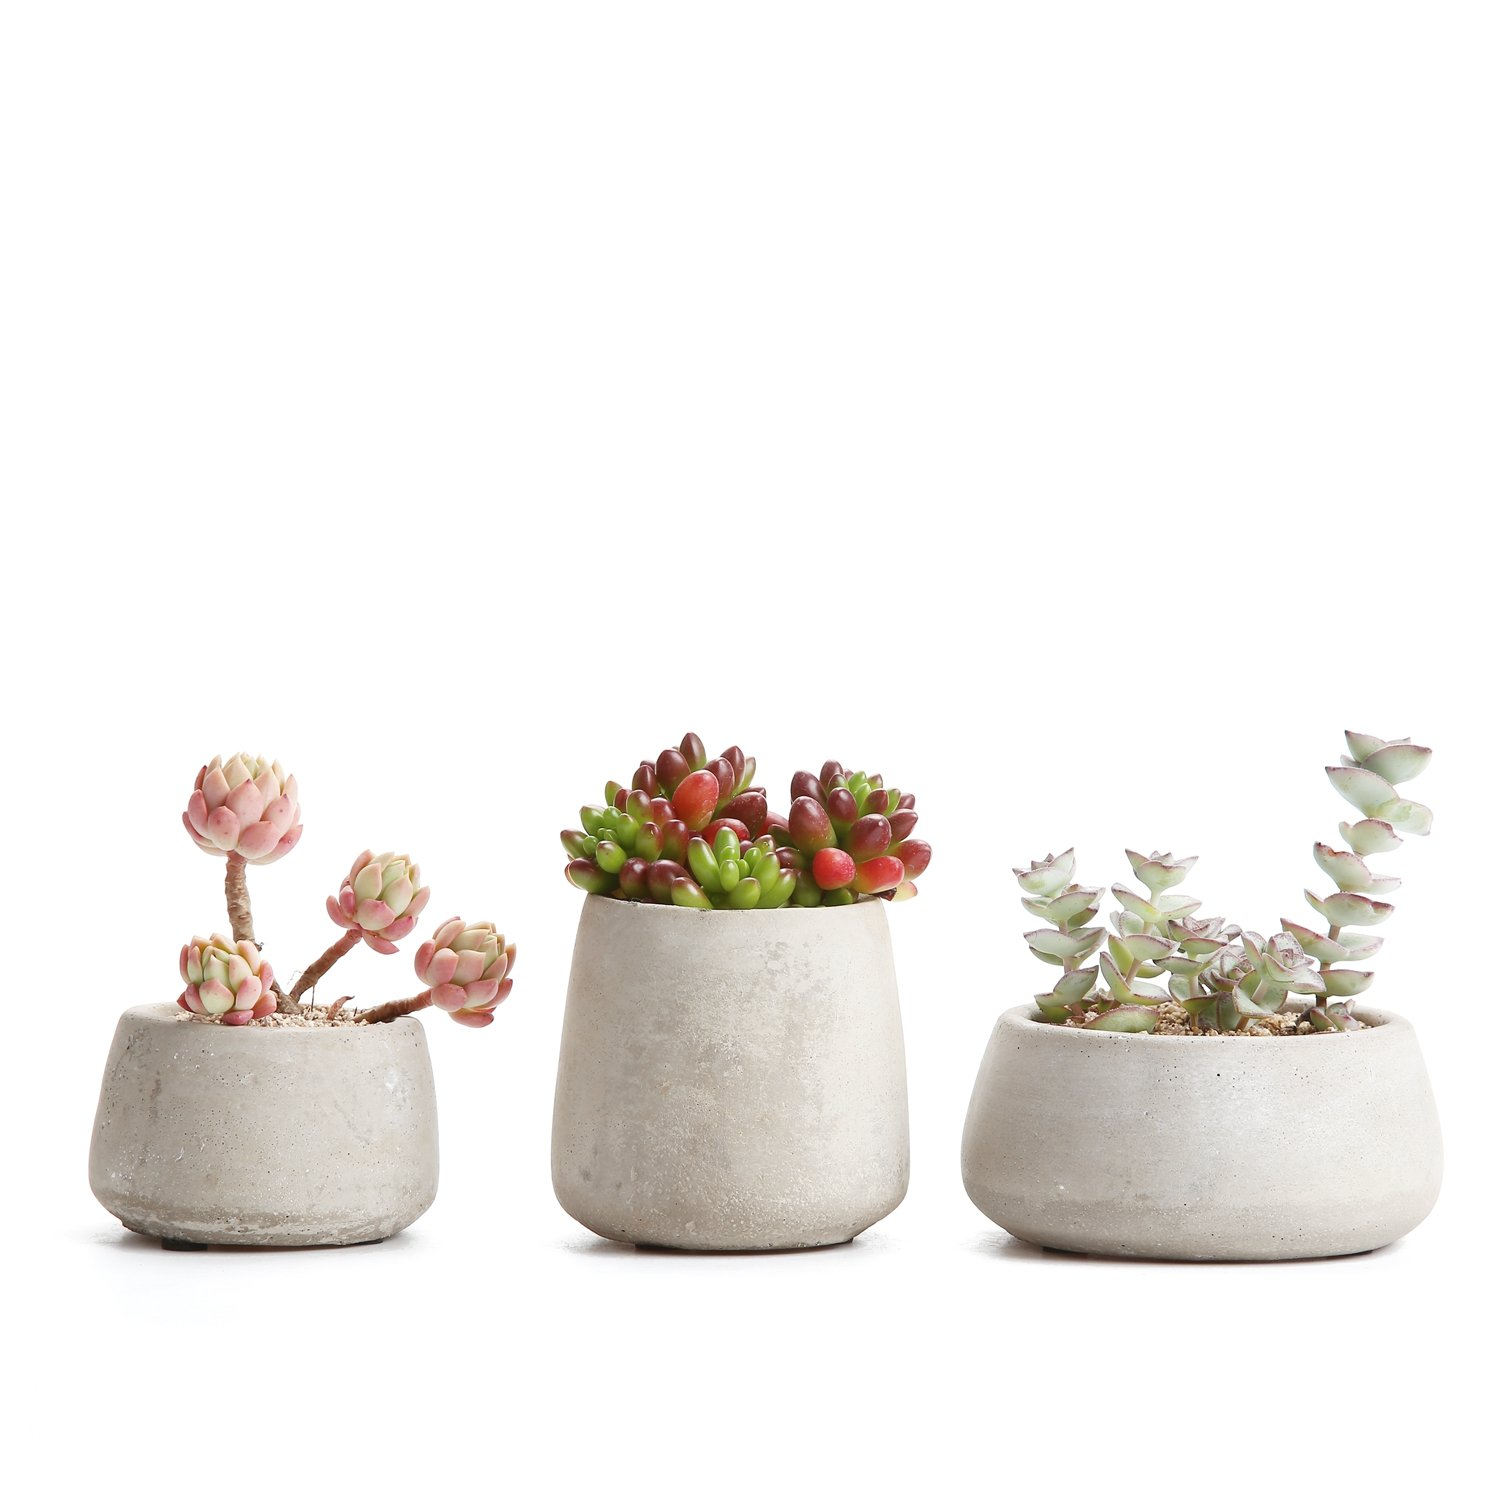 T4U 2.5-3.5 Inch Cement Serial Sets Sucuulent Cactus Plant Pots Flower Pots Planters Containers Window Boxes Grey - Pack of 3